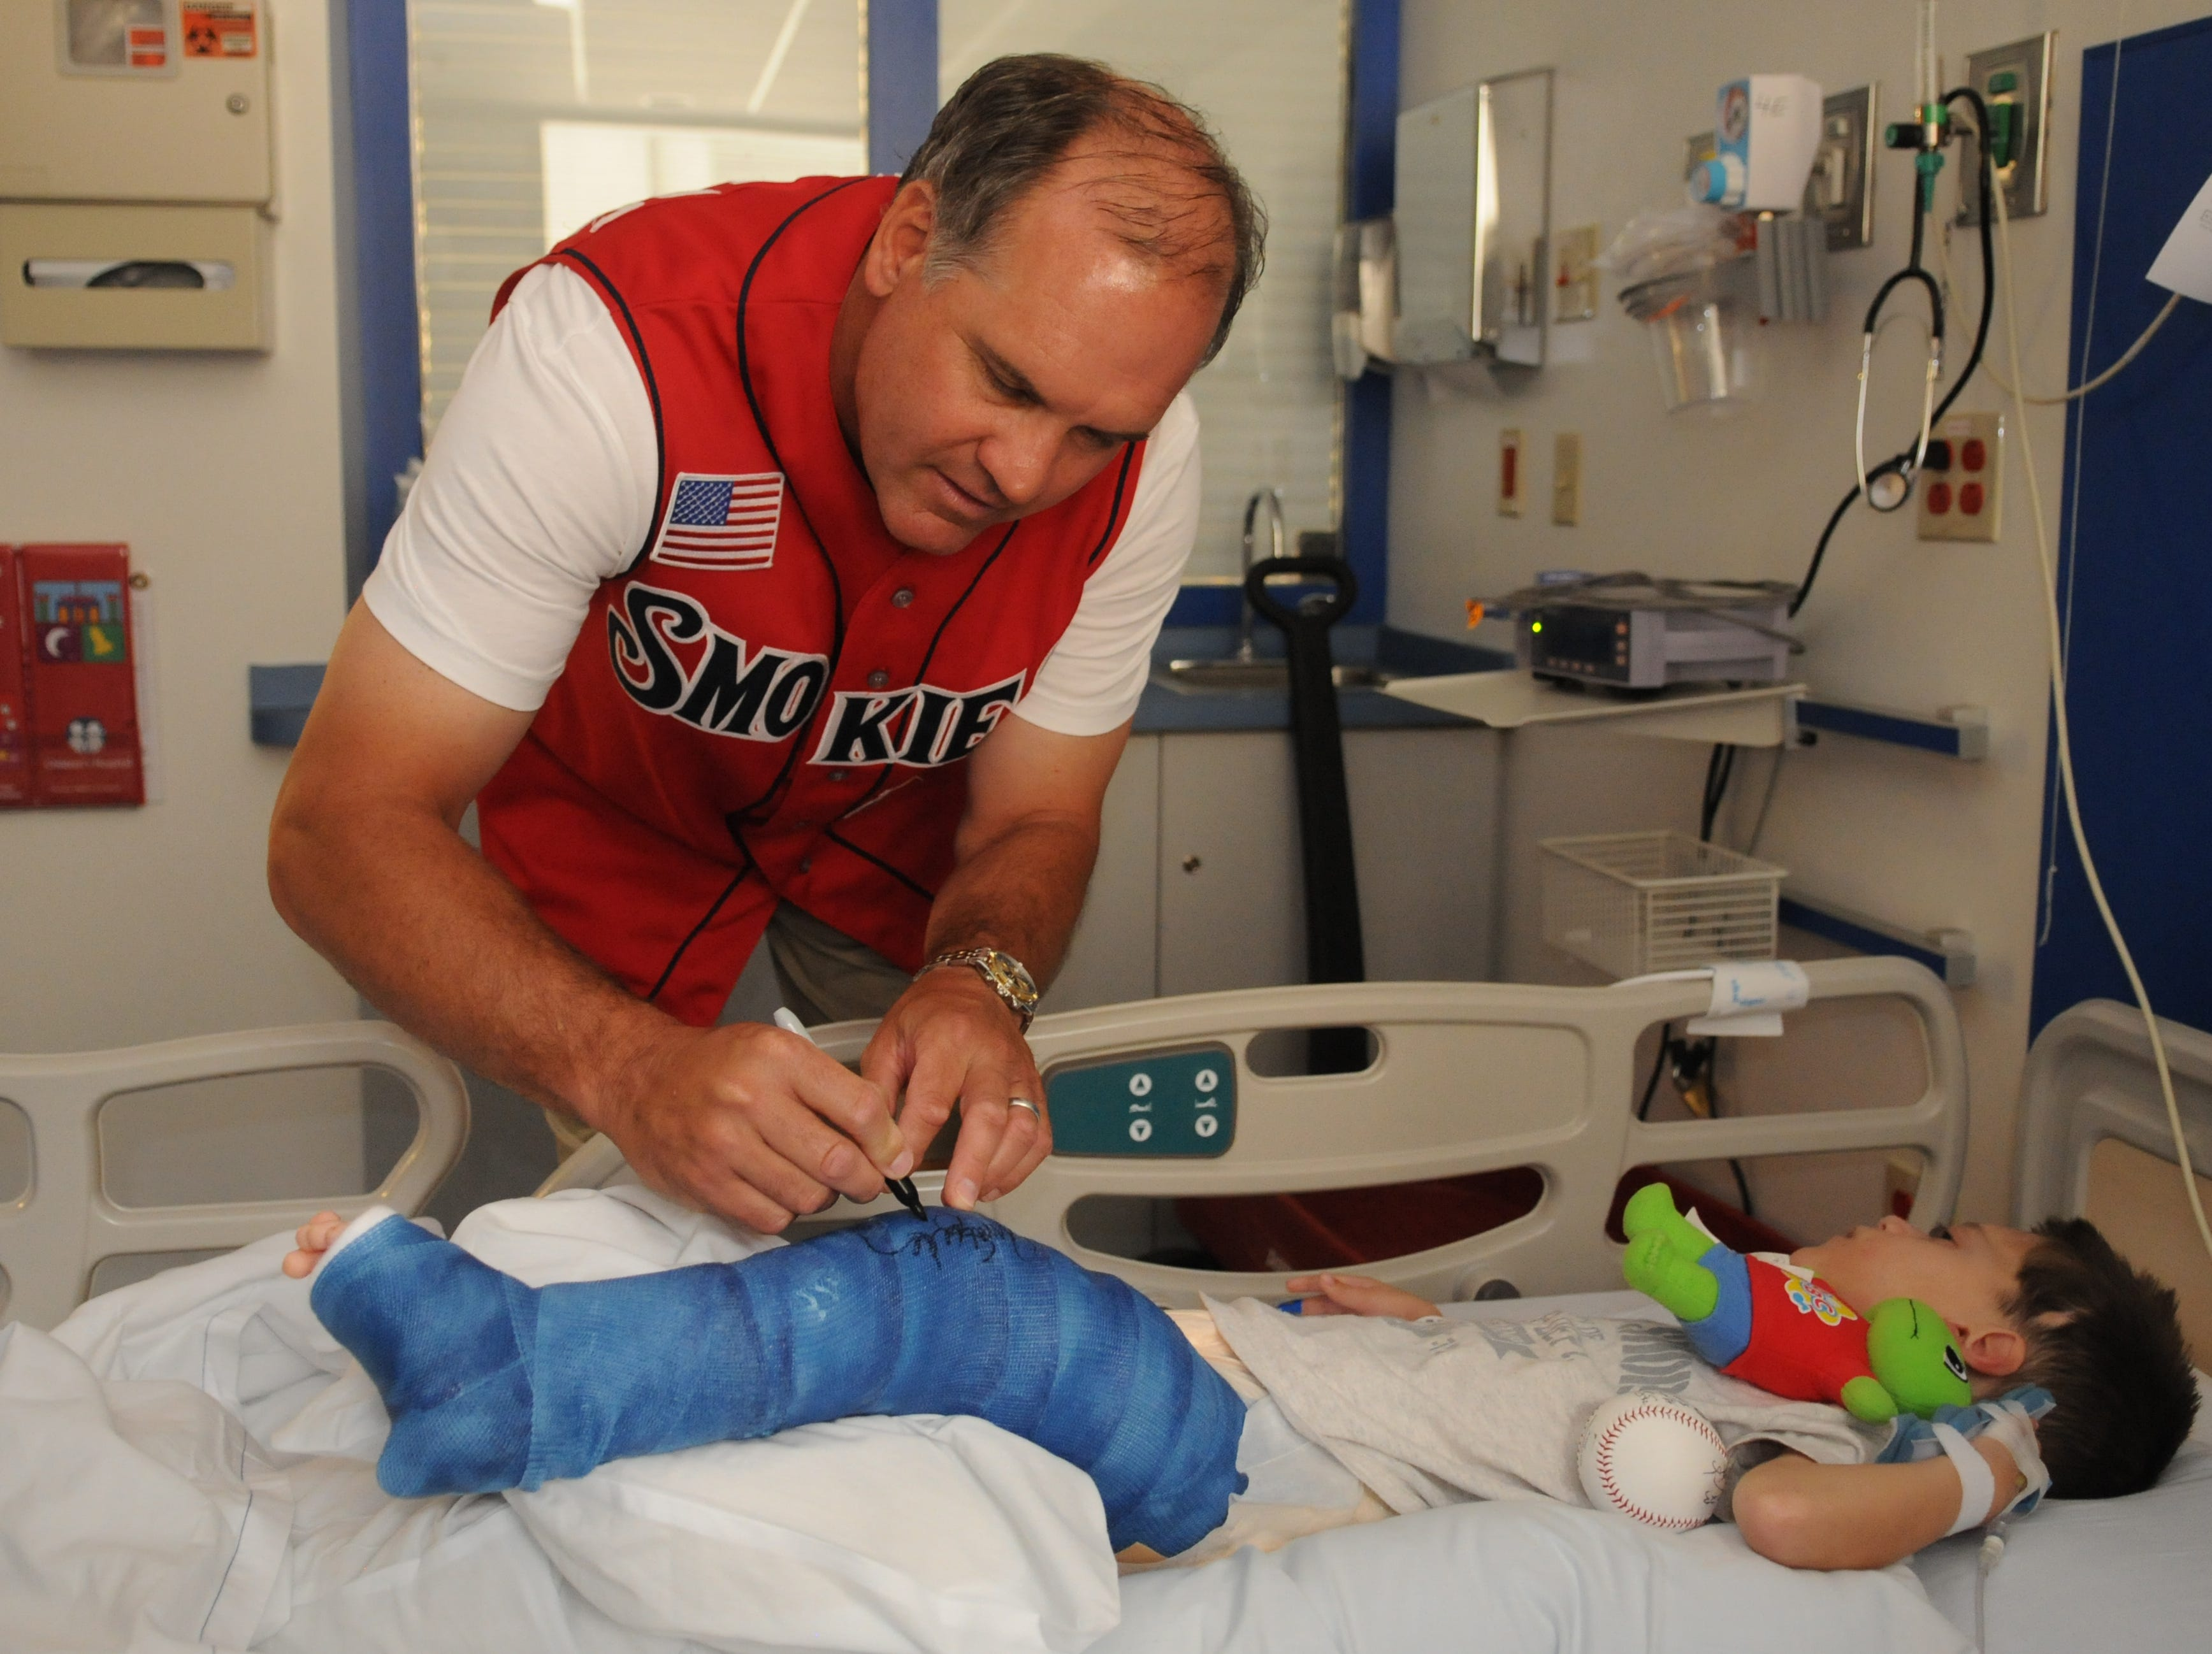 Tennessee Smokies Manager Ryne Sandberg autographs the cast of Caleb Carmon, 5, on Wednesday, May 27, 2009 at Childrens Hospital. Caleb is recovering from hip surgery.